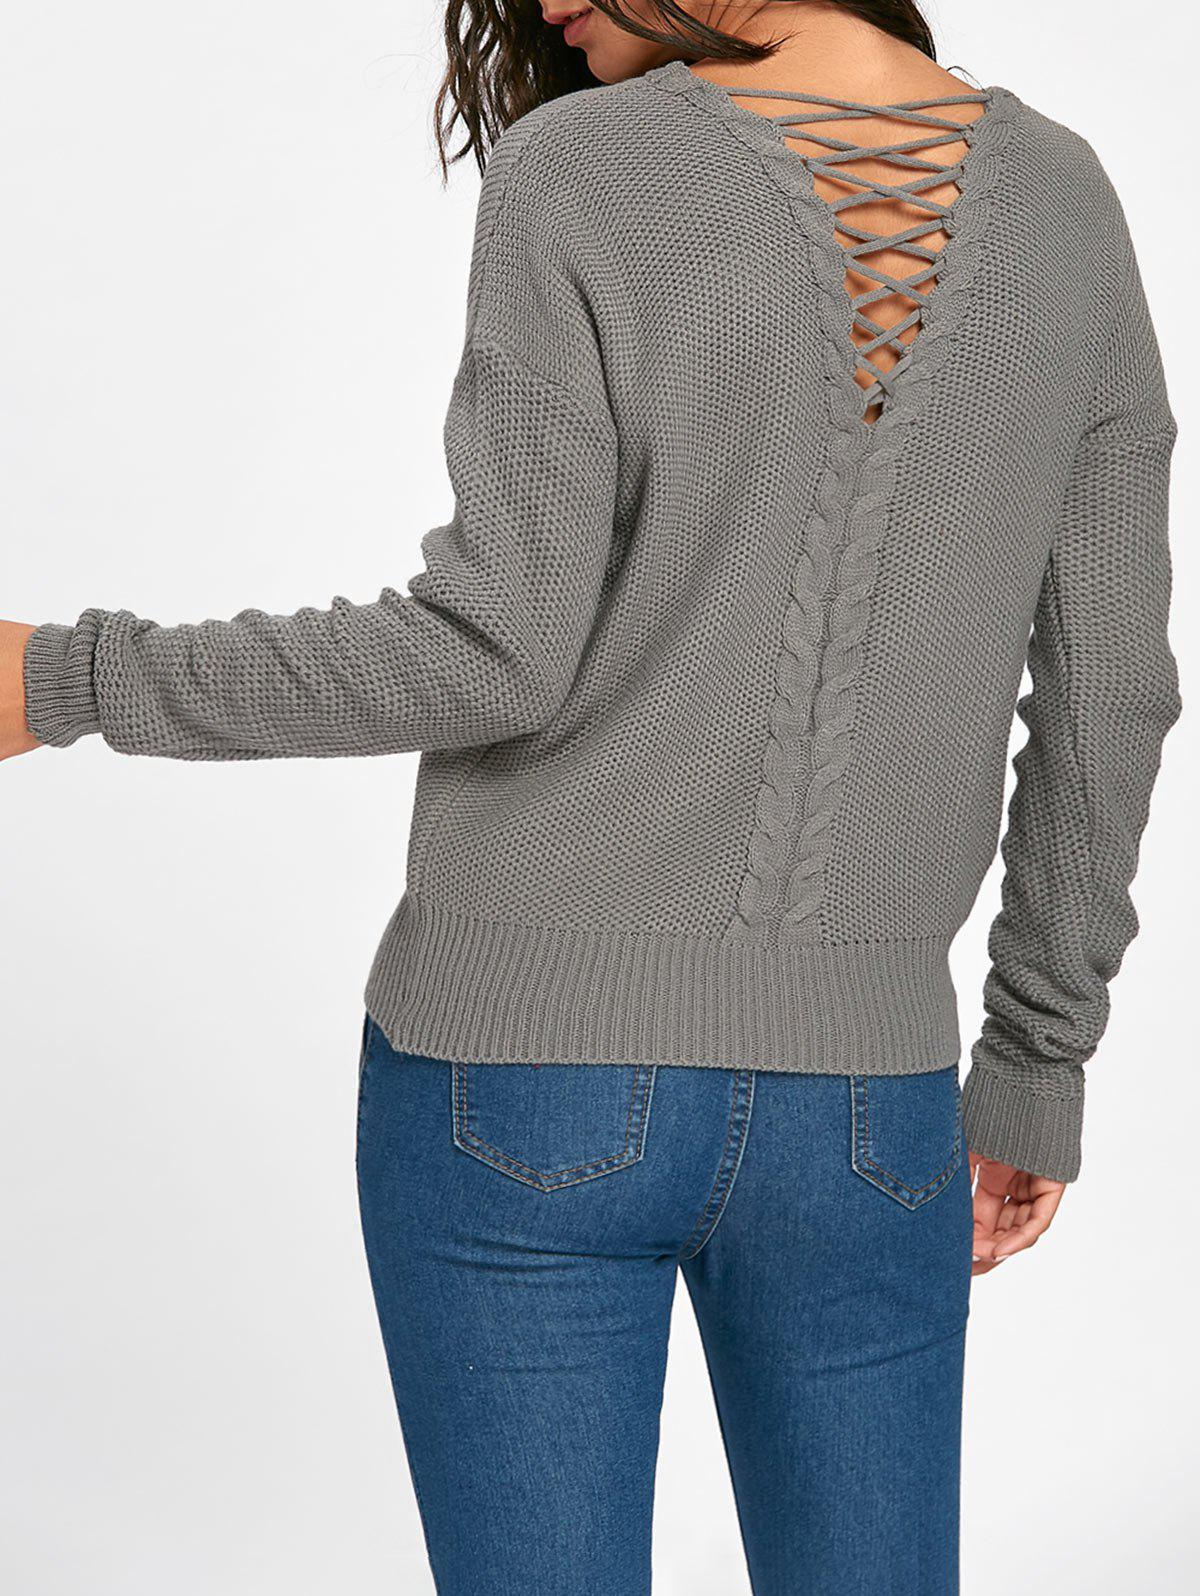 Cable Knitted Back Lace Up SweaterWOMEN<br><br>Size: ONE SIZE; Color: GRAY; Type: Pullovers; Material: Acrylic; Sleeve Length: Full; Collar: Scoop Neck; Style: Fashion; Pattern Type: Solid; Embellishment: Lace up; Season: Fall,Spring; Weight: 0.3600kg; Package Contents: 1 x Sweater;